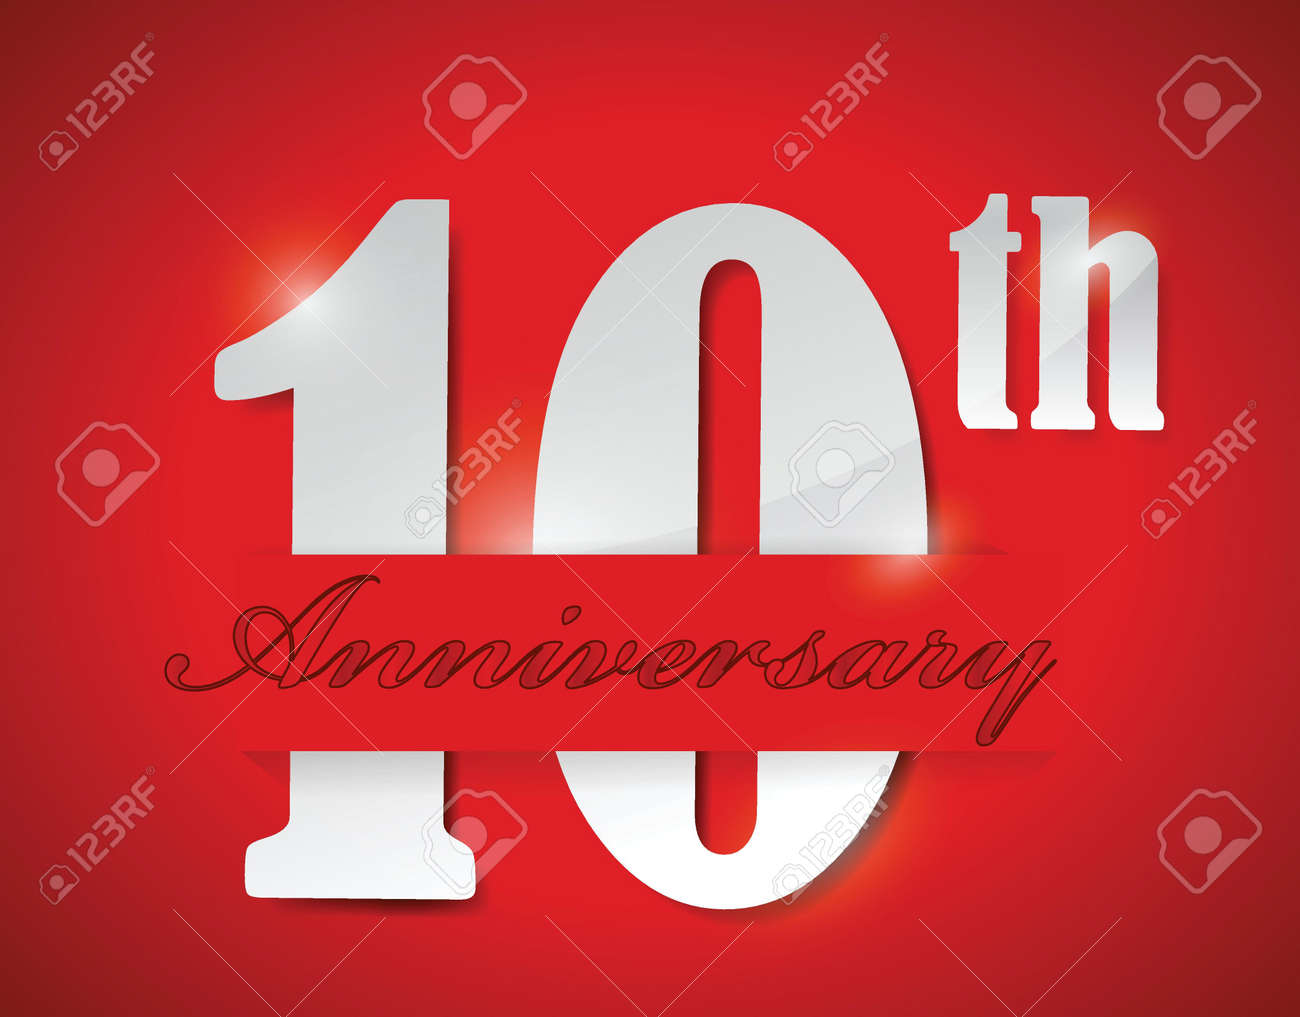 Th anniversary illustration design over a red background royalty